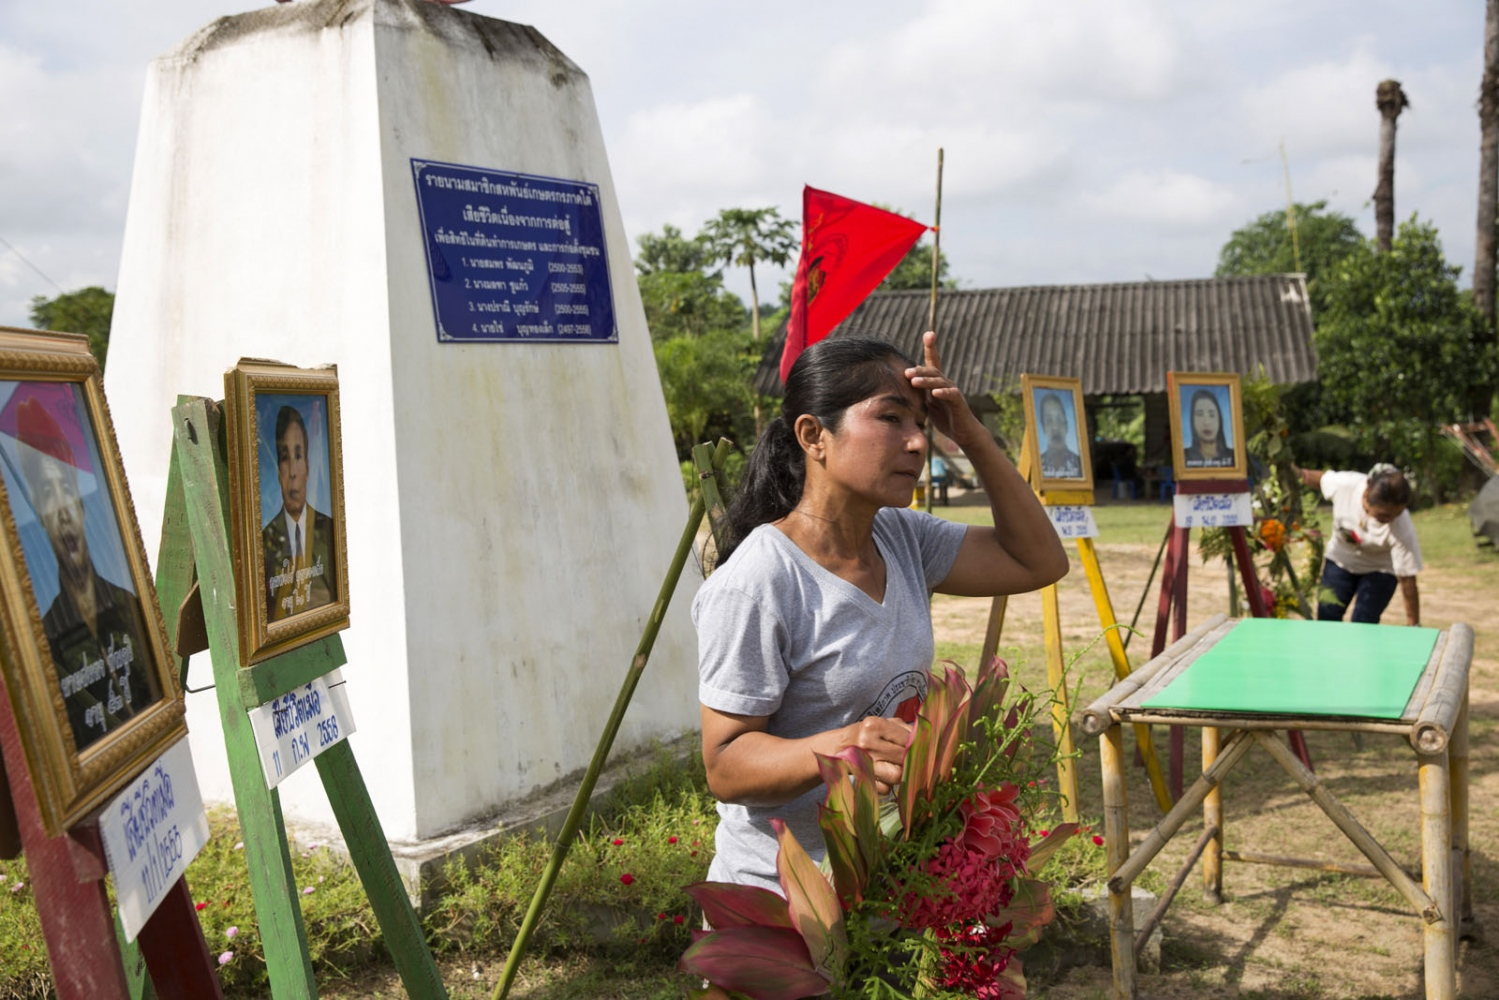 A member of the Klong Sai Pattana community wipes her brow as she helps set-up for the annual memorial day event. Occurring on November 28th the villagers use the event to remember each of the four people murdered during their prolonged fight to remain on the land. for each of the four people murdered during their prolonged fight to remain on the land.